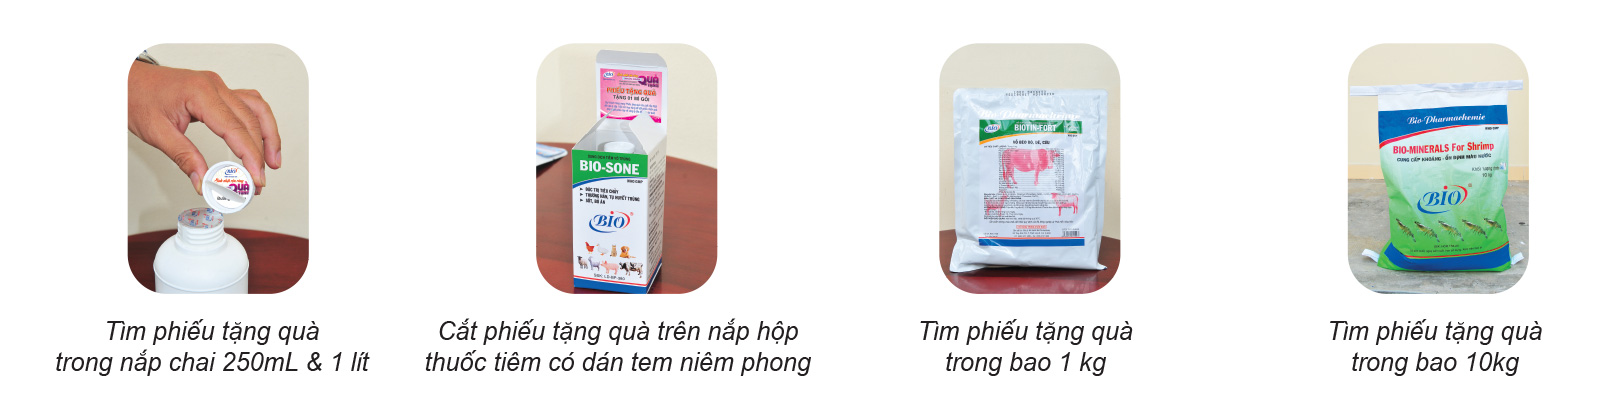 http://biopharmachemie.com/uploads/images/news/KM%20THANG%20102017/TRUNG-THUONG.jpg